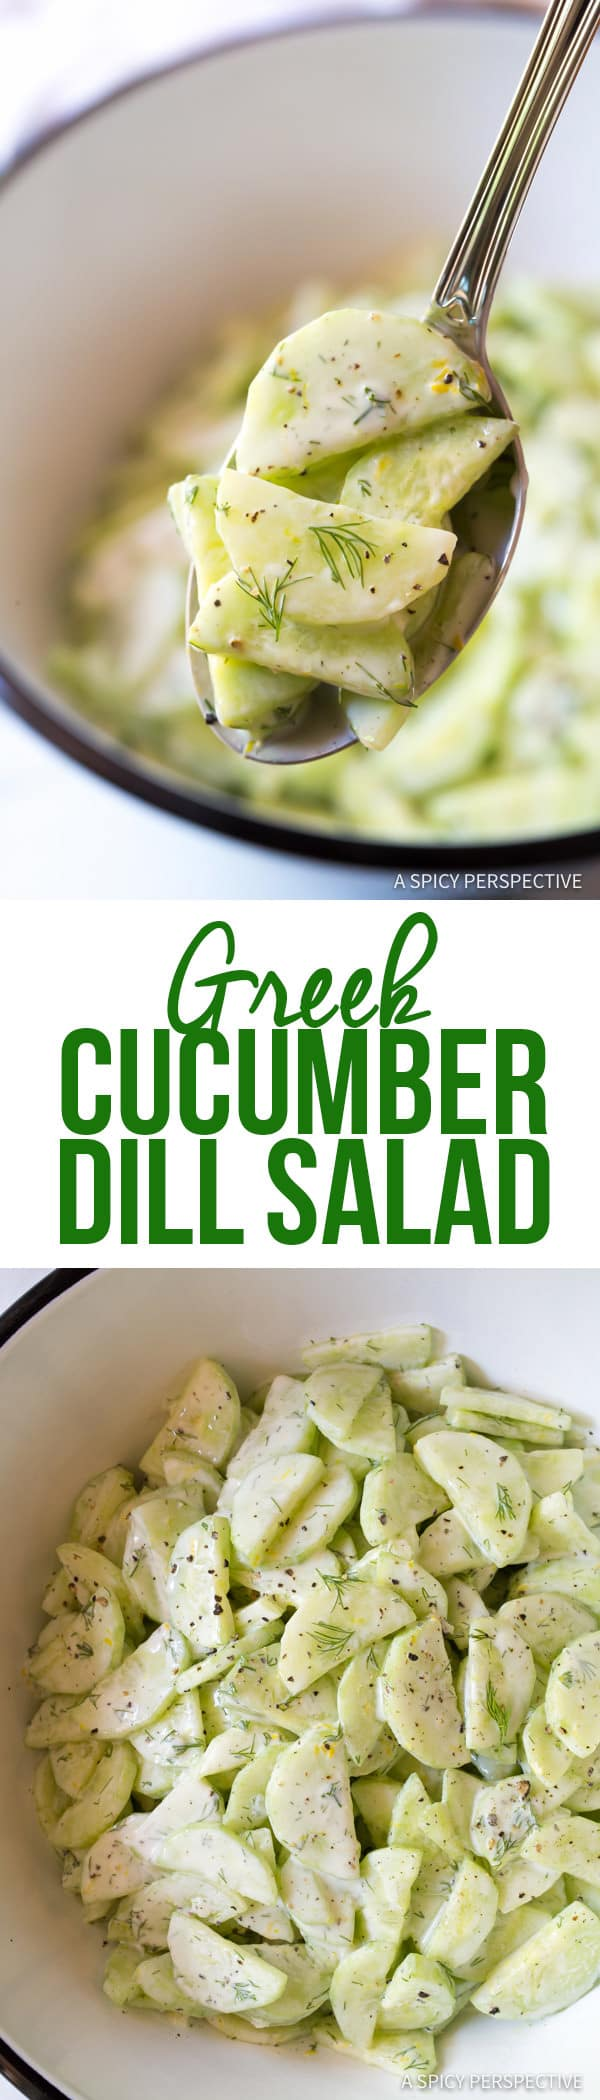 Classic Greek Cucumber Dill Salad Recipe | ASpicyPerspective.com